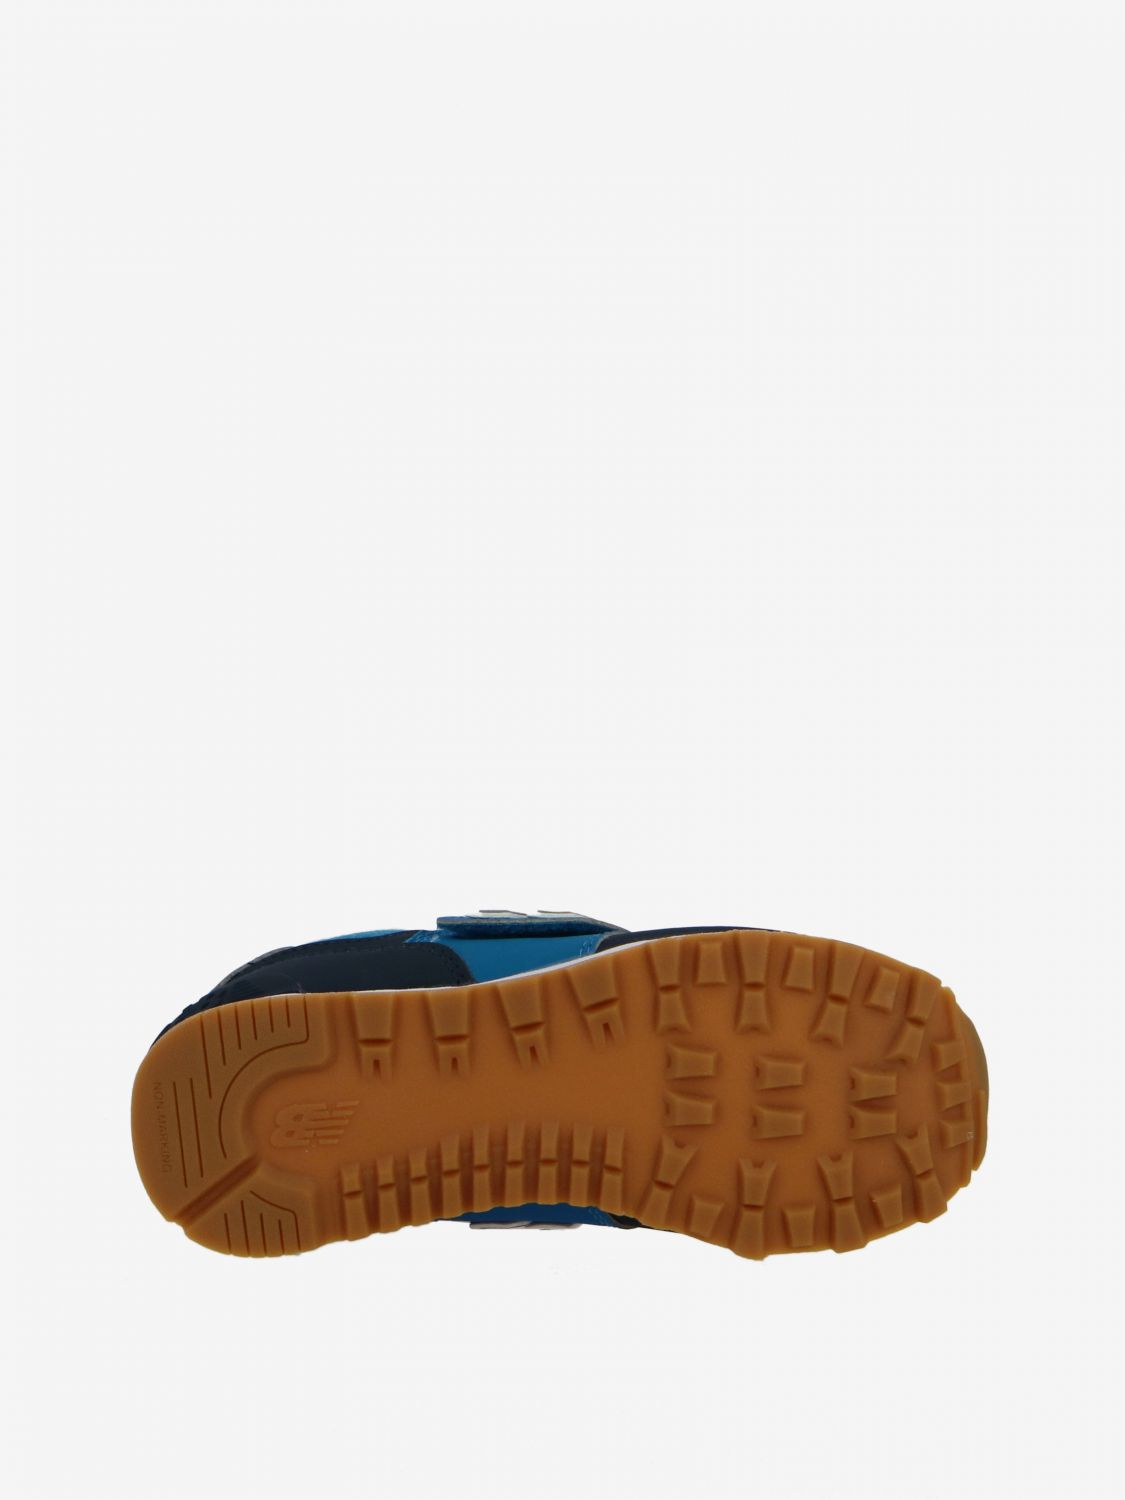 Shoes kids New Balance gnawed blue 6